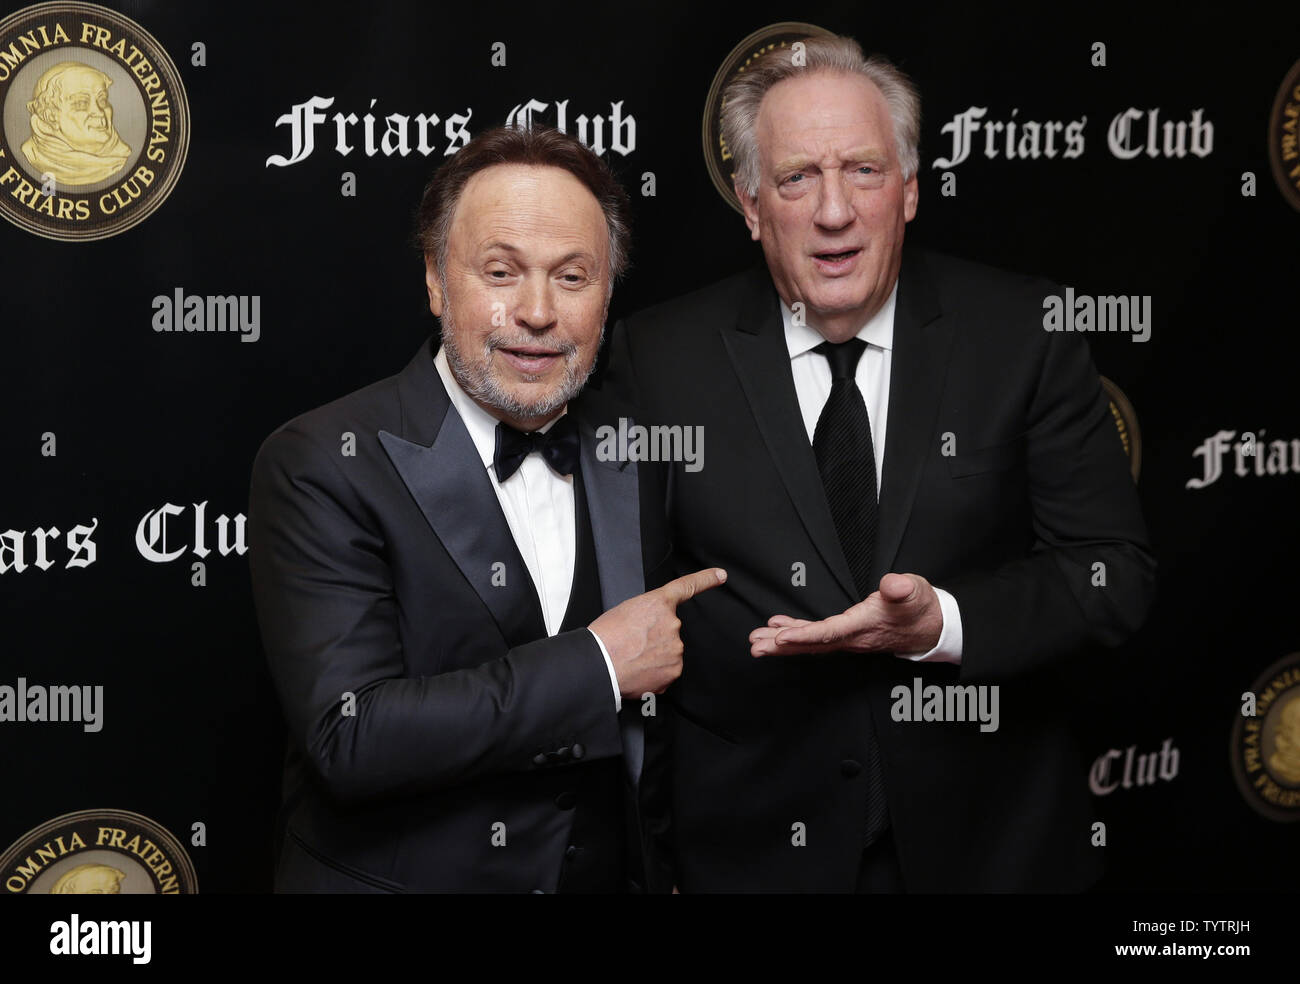 Billy Crystal and Alan Zweibel arrive on the red carpet when the Friar's Club Honors Billy Crystal with their Entertainment Icon Award at The Ziegfeld Ballroom on November 12, 2018 in New York City.       Photo by John Angelillo/UPI - Stock Image